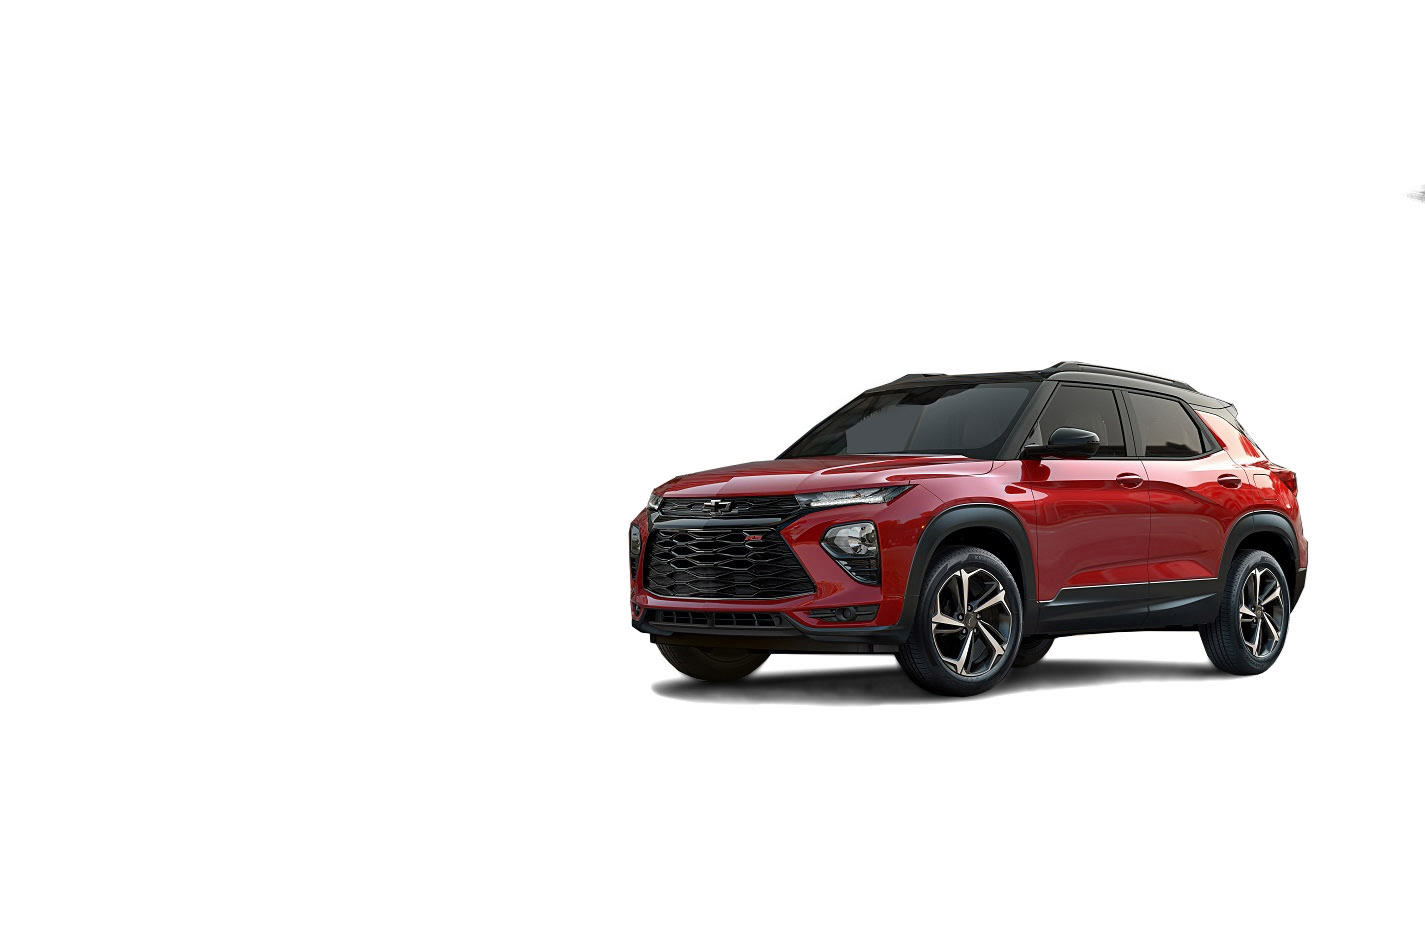 2021 chevrolet trailblazer lt full specs features and